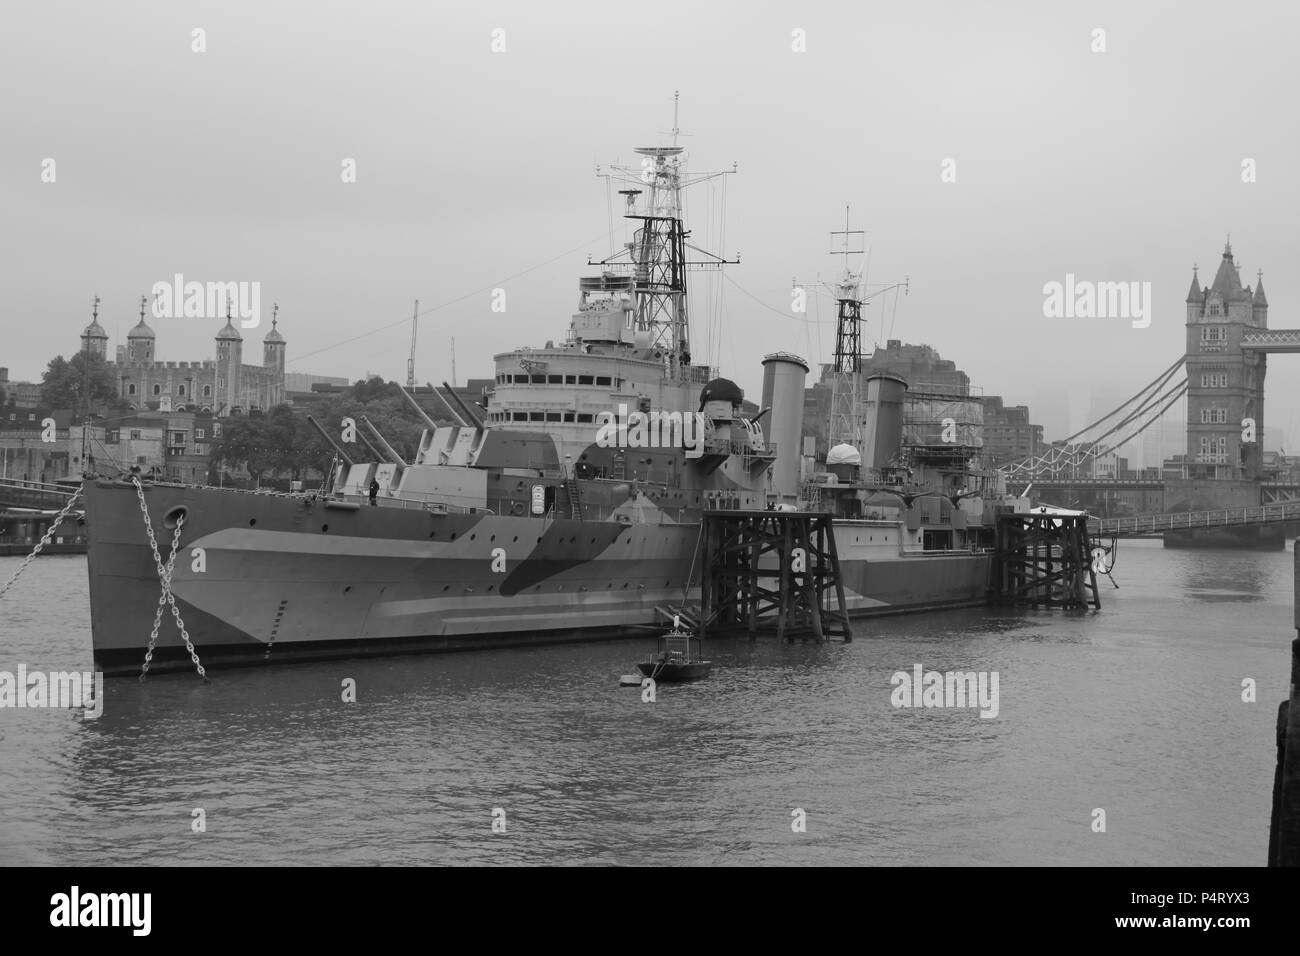 HMS Belfast is a Town-Class light cruiser that was built for the Royal Navy; now permanently moored as a museum on the River Thames, UK, PETER GRANT - Stock Image